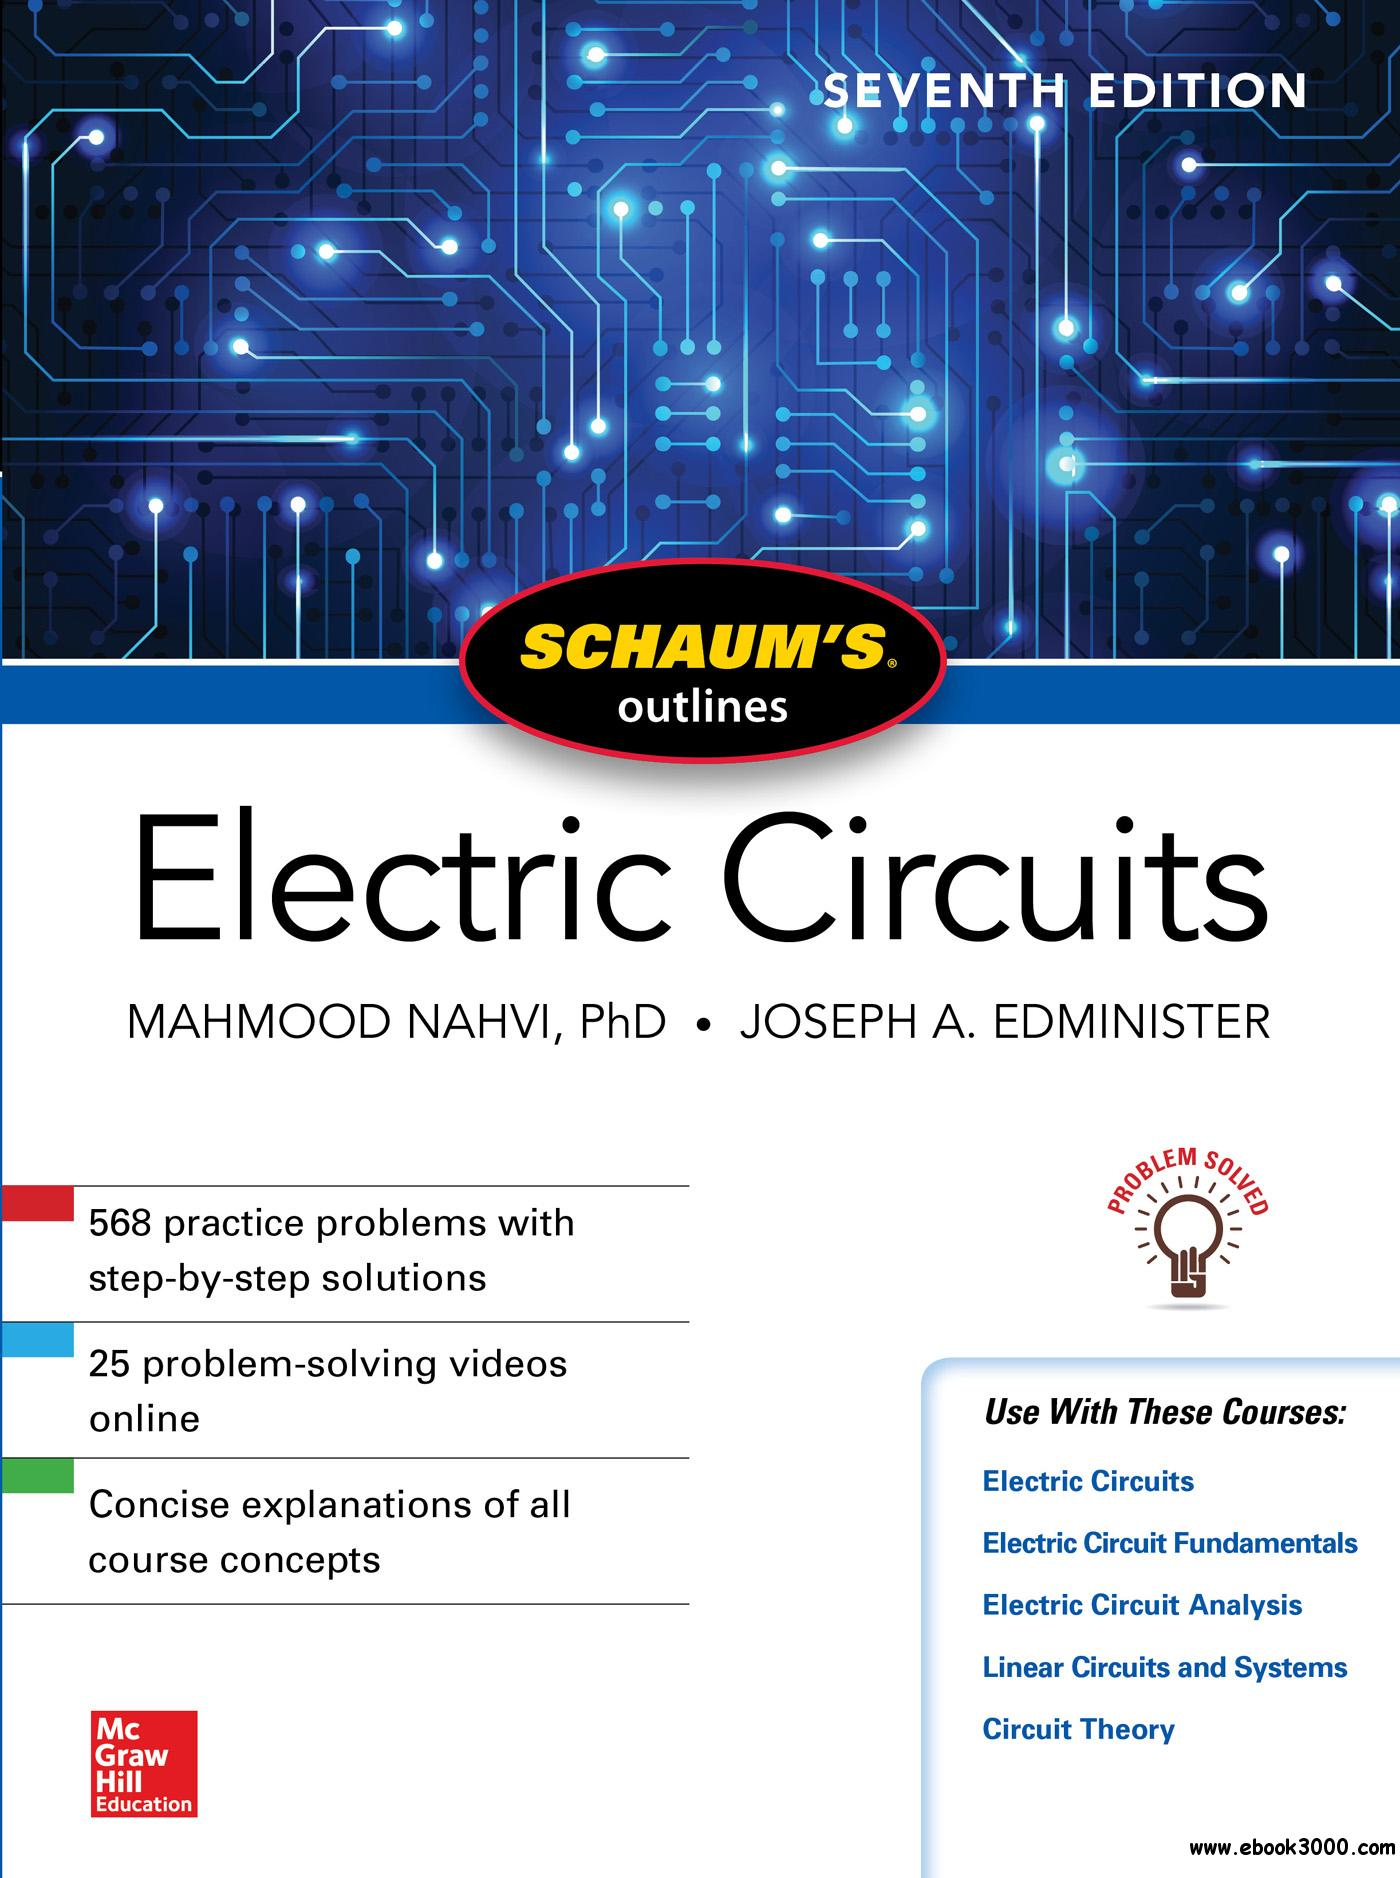 Schaum's Outline of Electric Circuits, 7th Edition